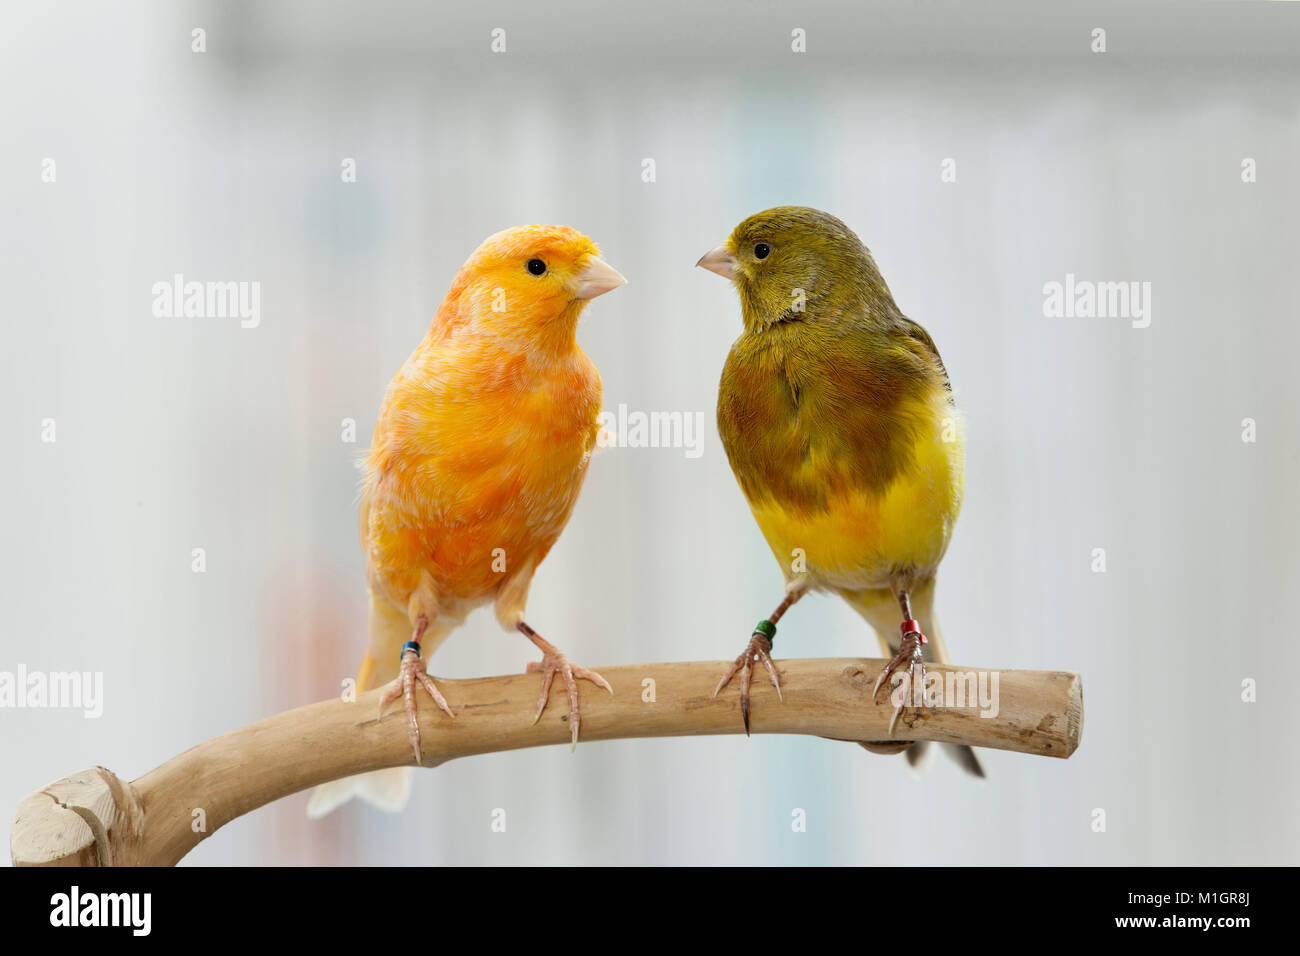 Domestic canary. Two birds of different colour perched on a twig. Germany - Stock Image